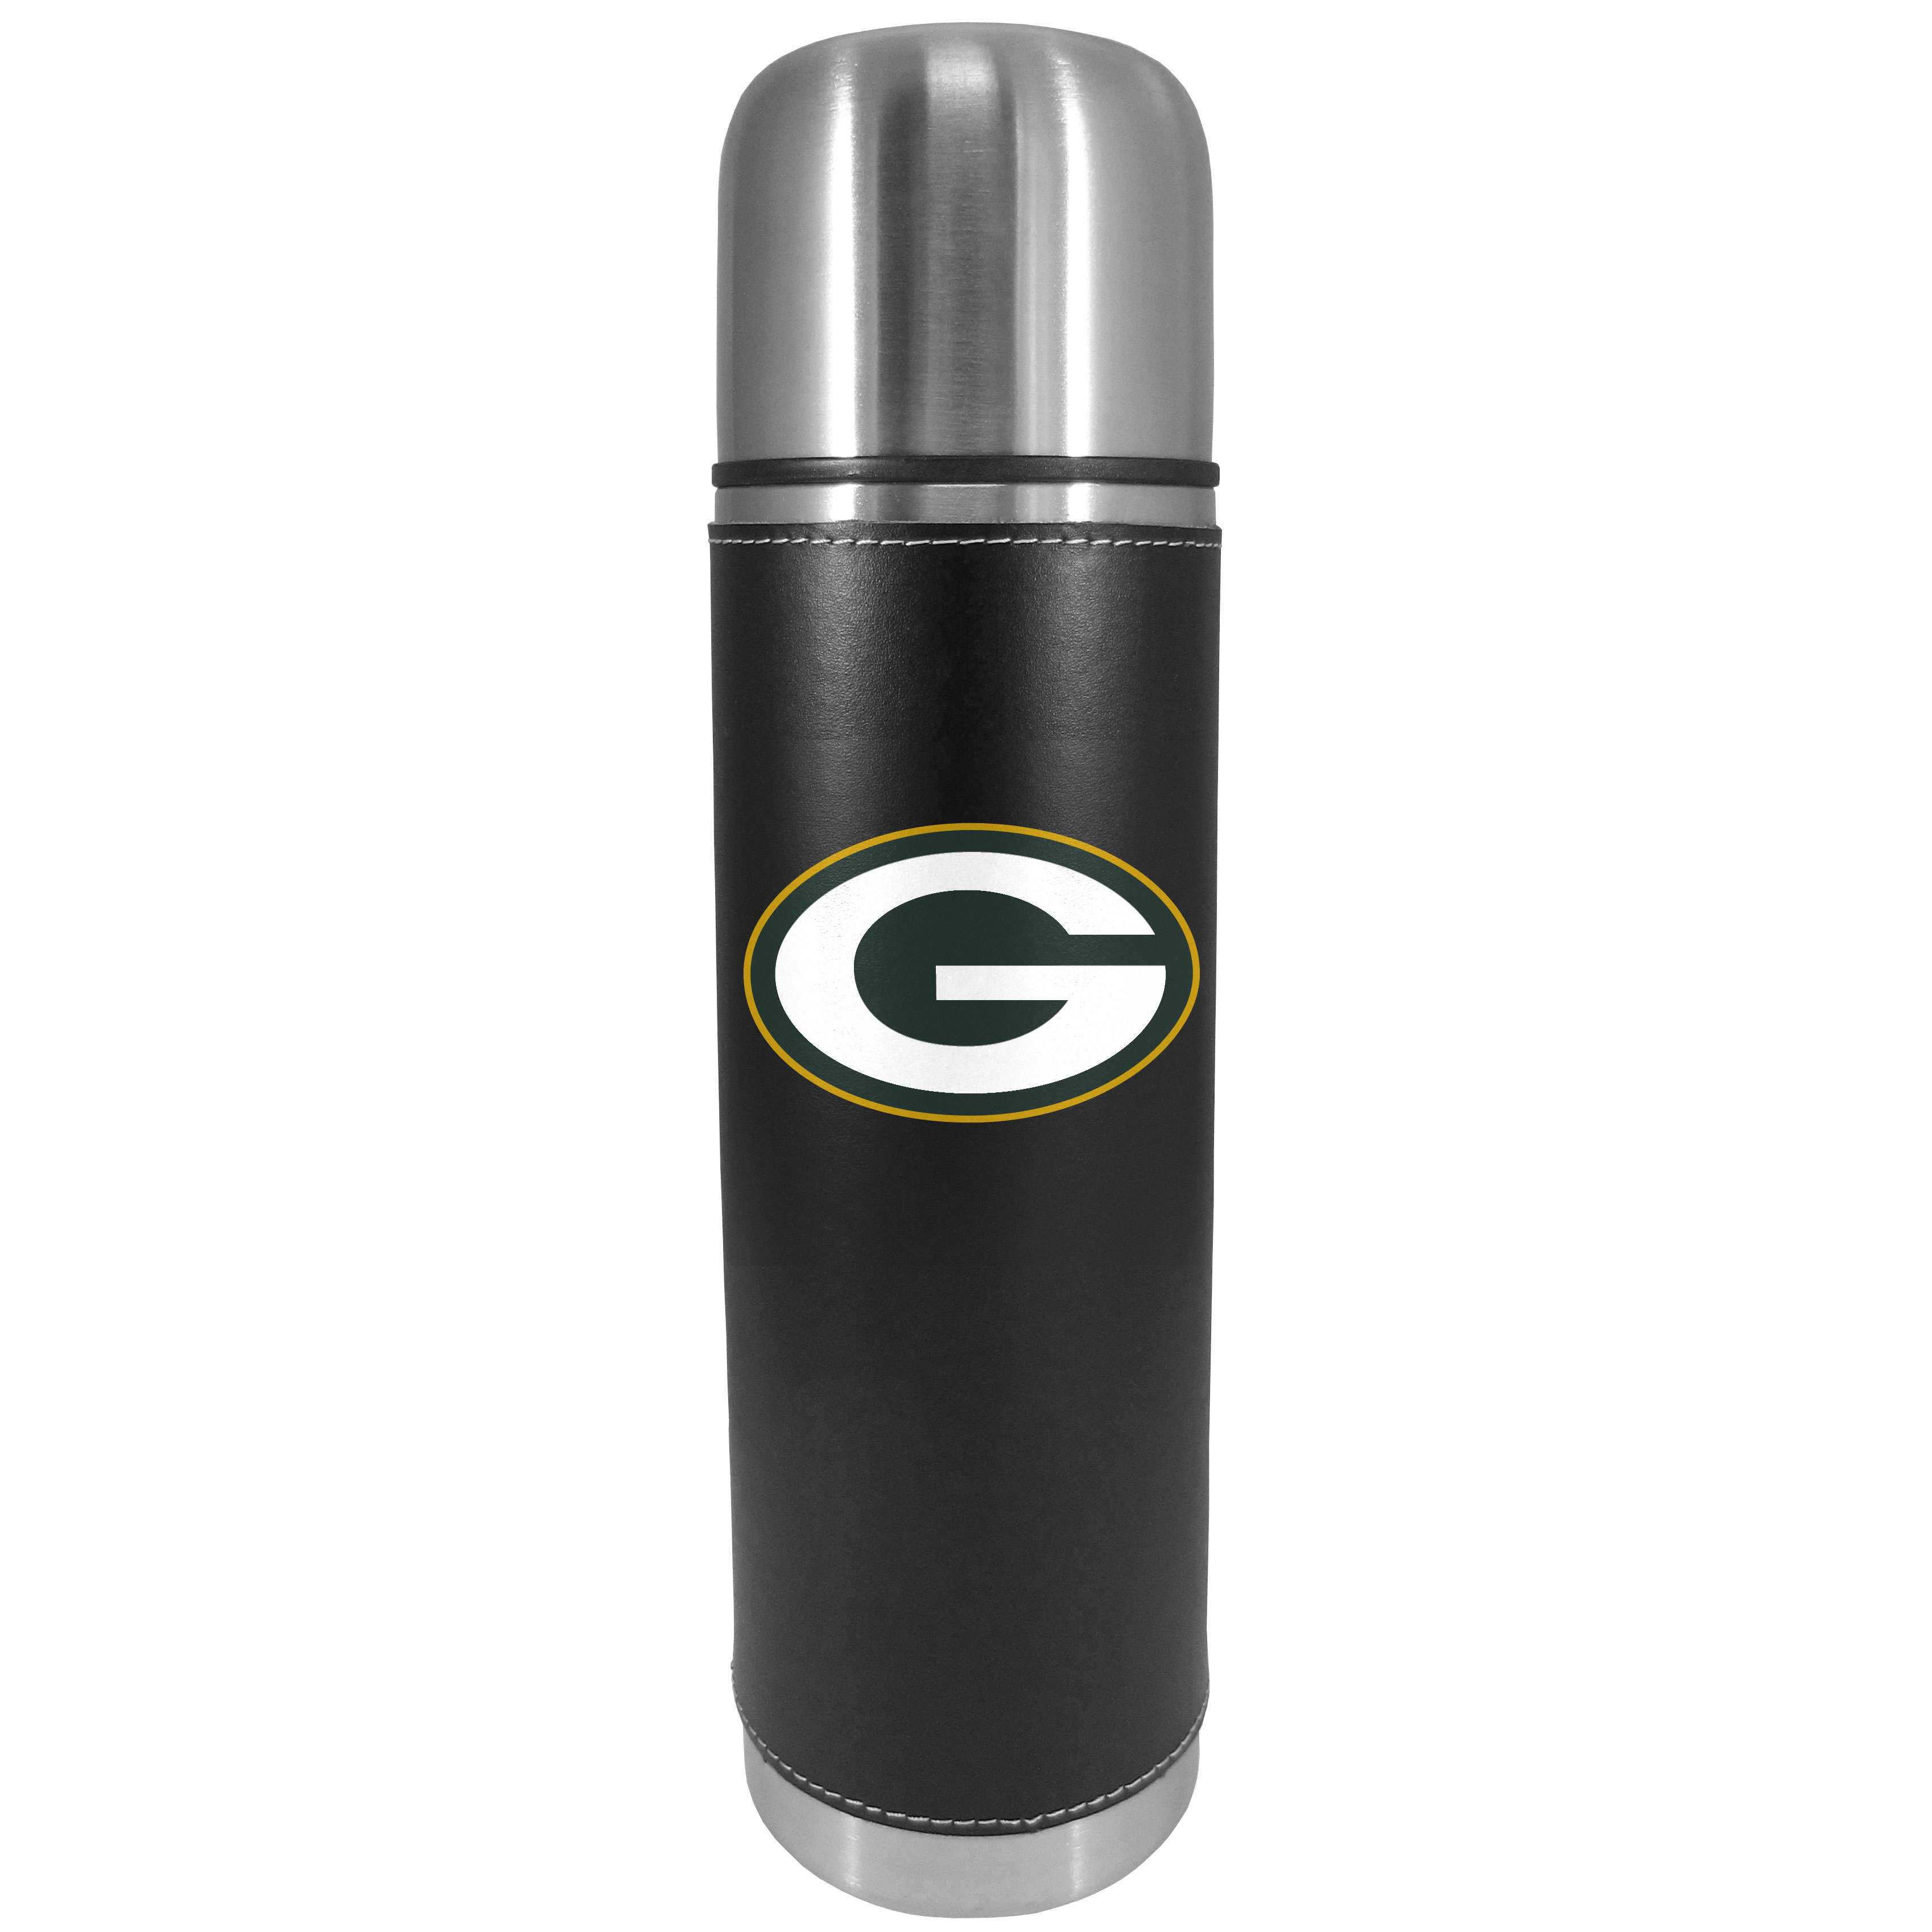 Green Bay Packers Graphics Thermos - This attractive, 26 ounce Green Bay Packers thermos is a great way to keep your beverages hot while on the go. The 11 inch tall, vacuum sealed thermos features a black vinyl wrap with stitched details and a digitally printed team logo. The lid screws on and can be used as a cup.